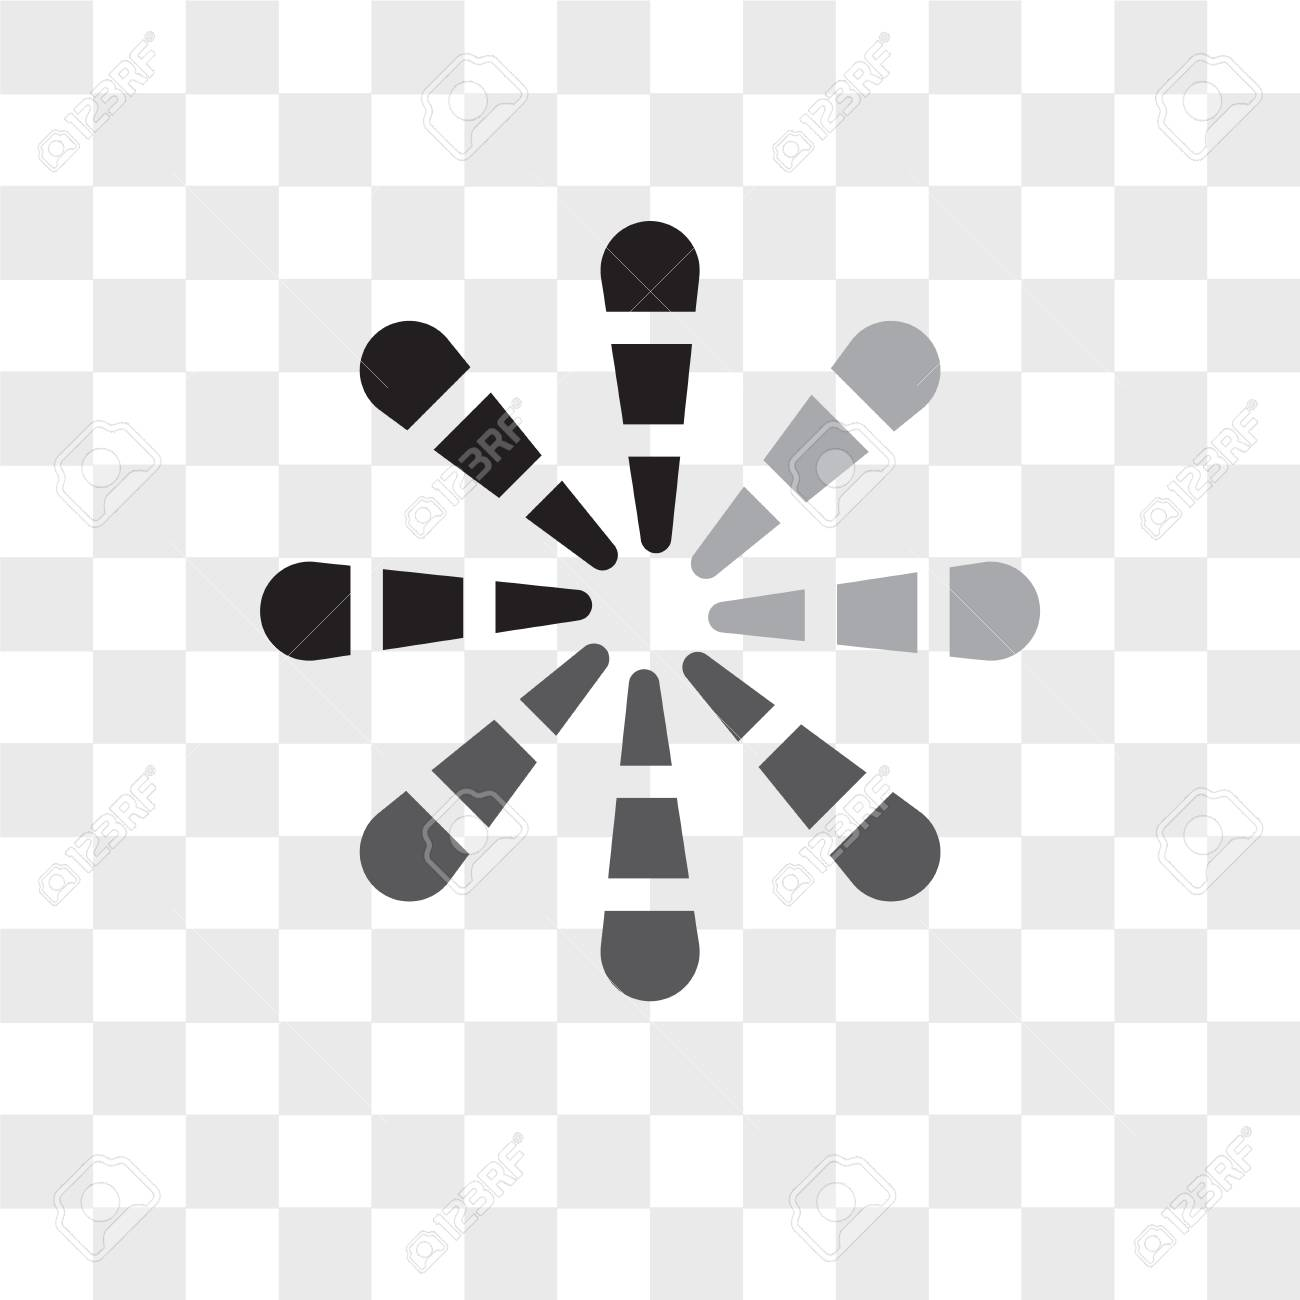 Loading Vector Icon Isolated On Transparent Background Loading Royalty Free Cliparts Vectors And Stock Illustration Image 108881767